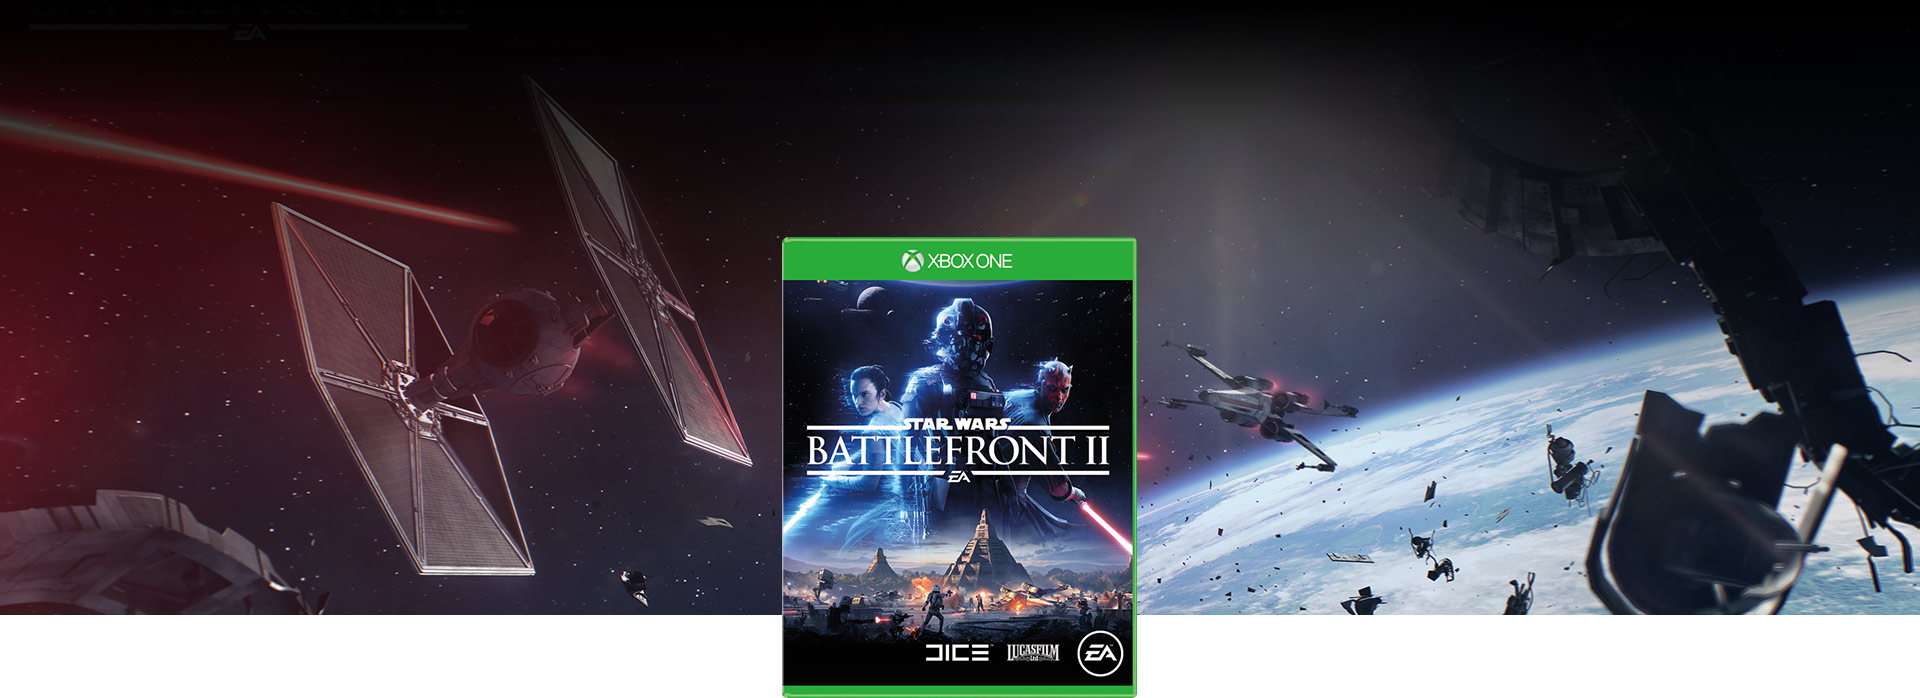 Star Wars Battlefront 2 boxshot